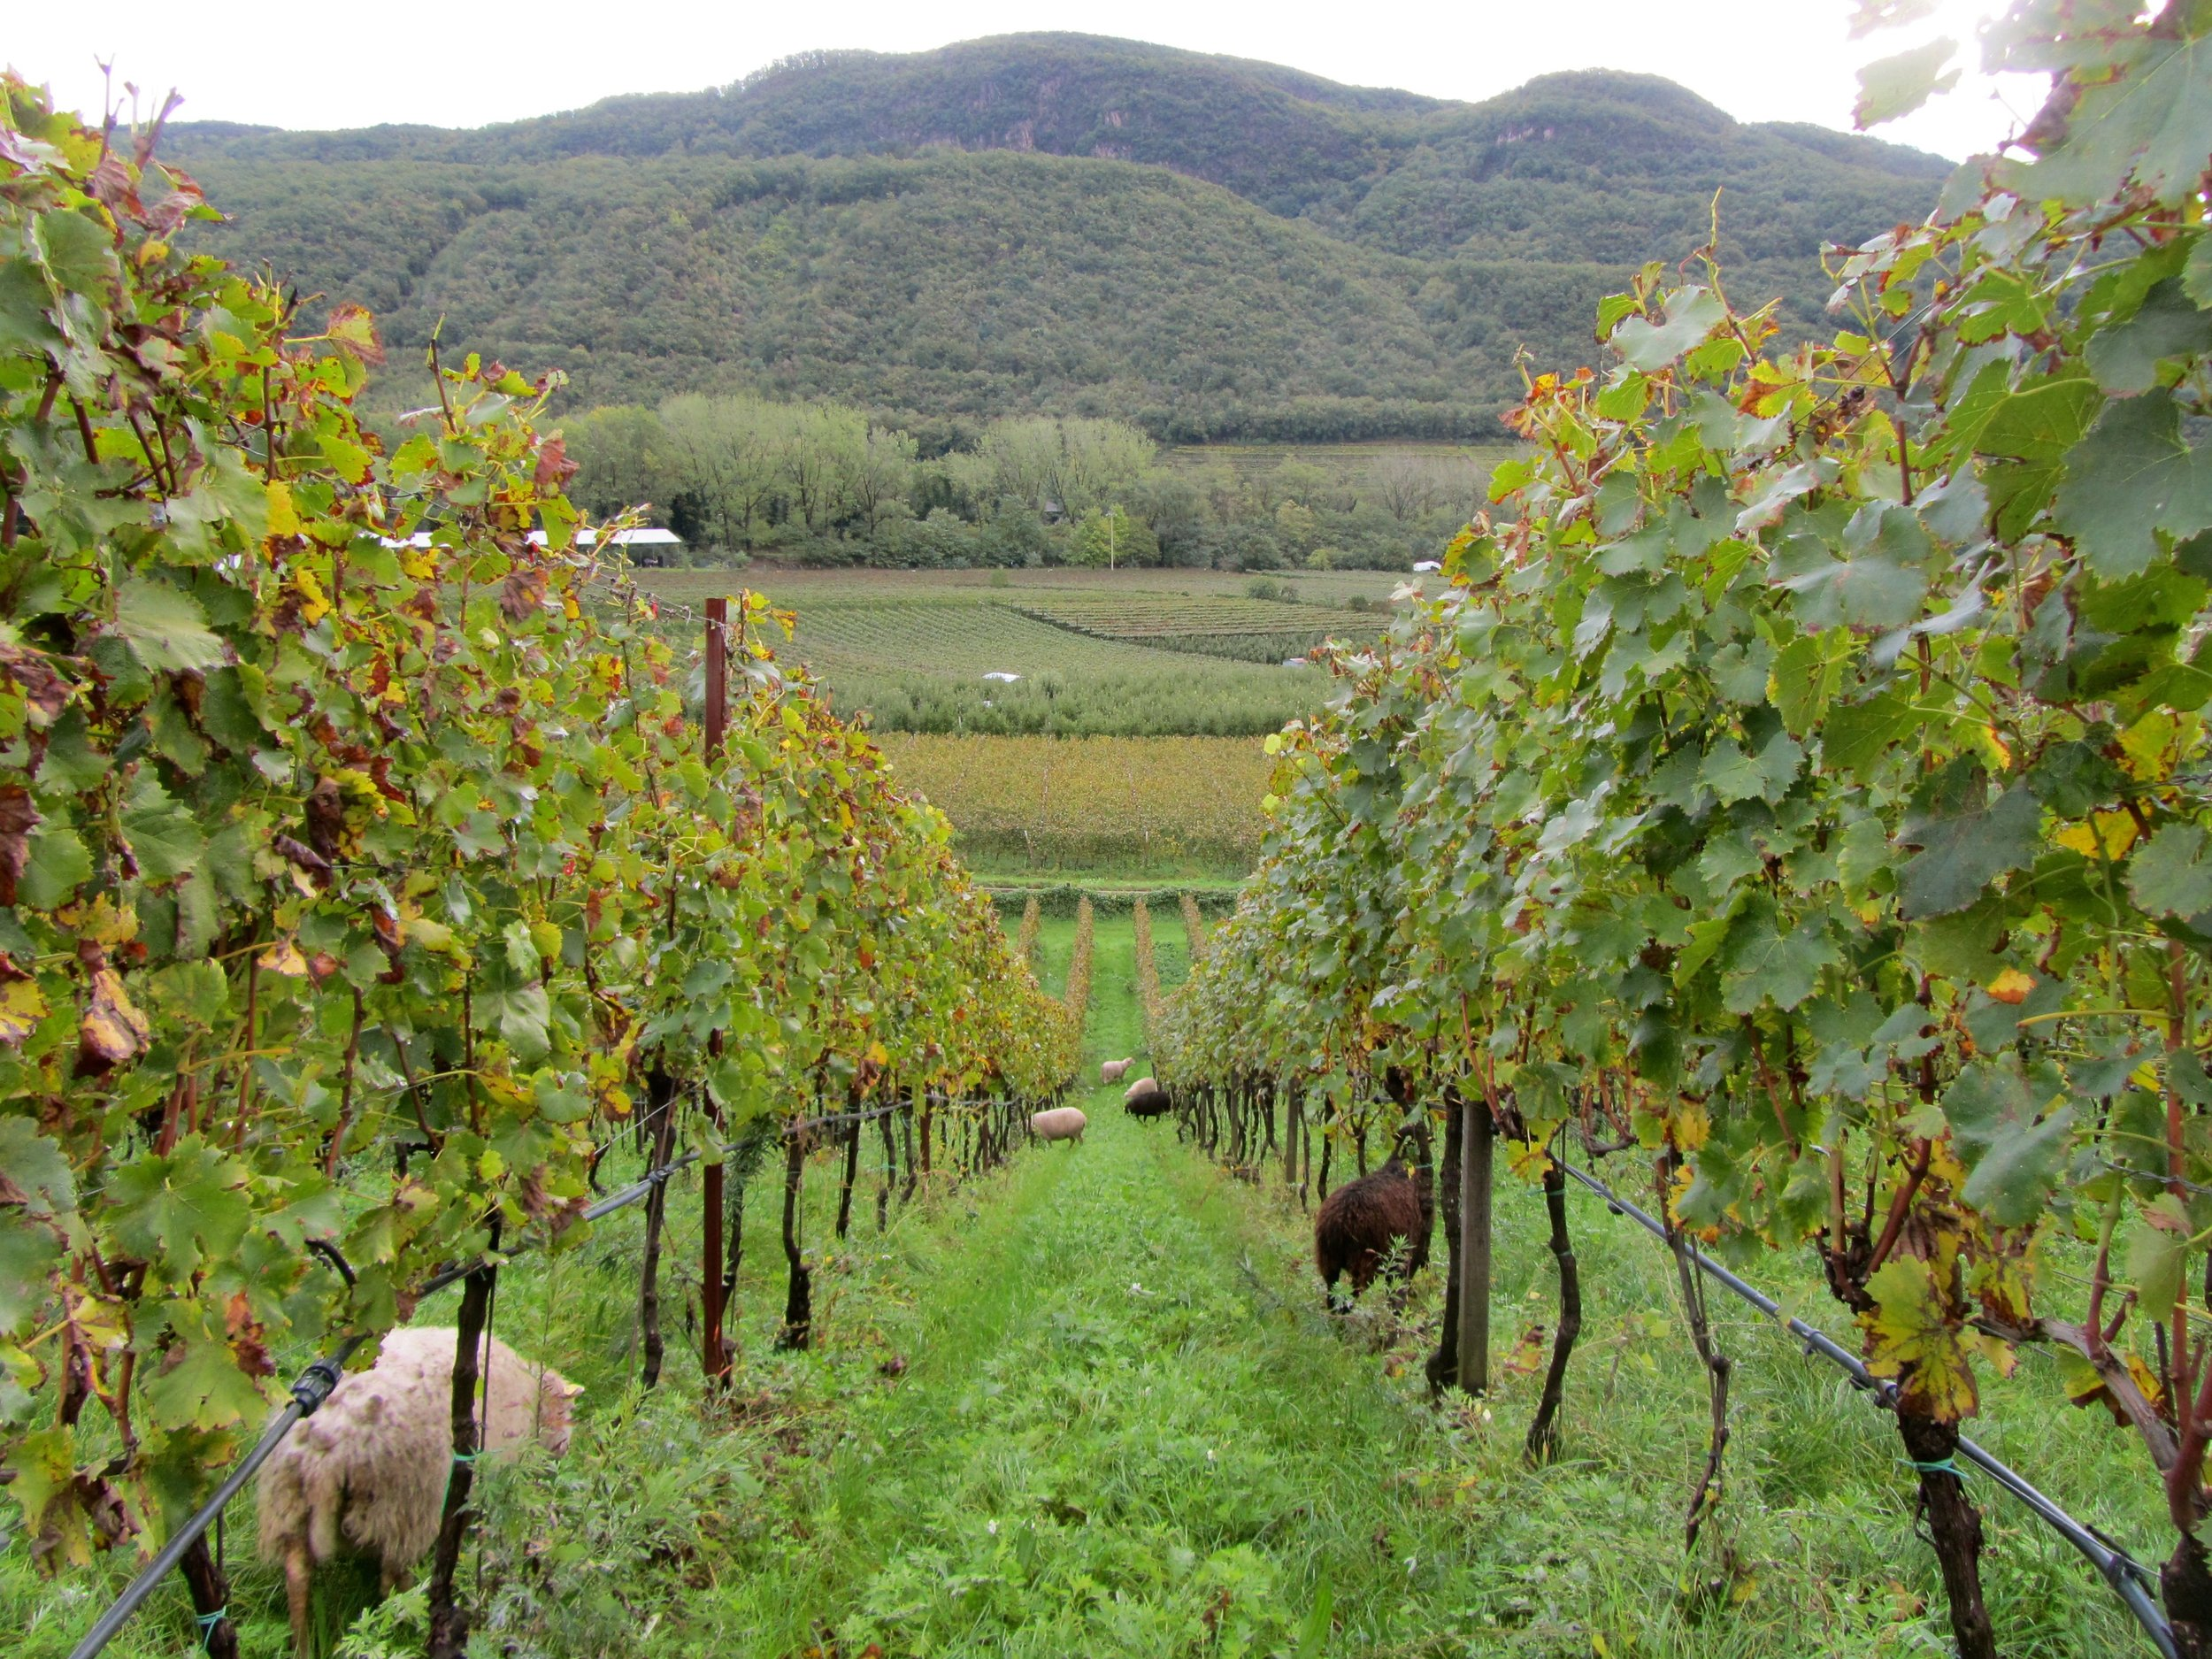 Manincor-Biodynamic-Vineyards-in-Alto-Adige-Italy.jpg